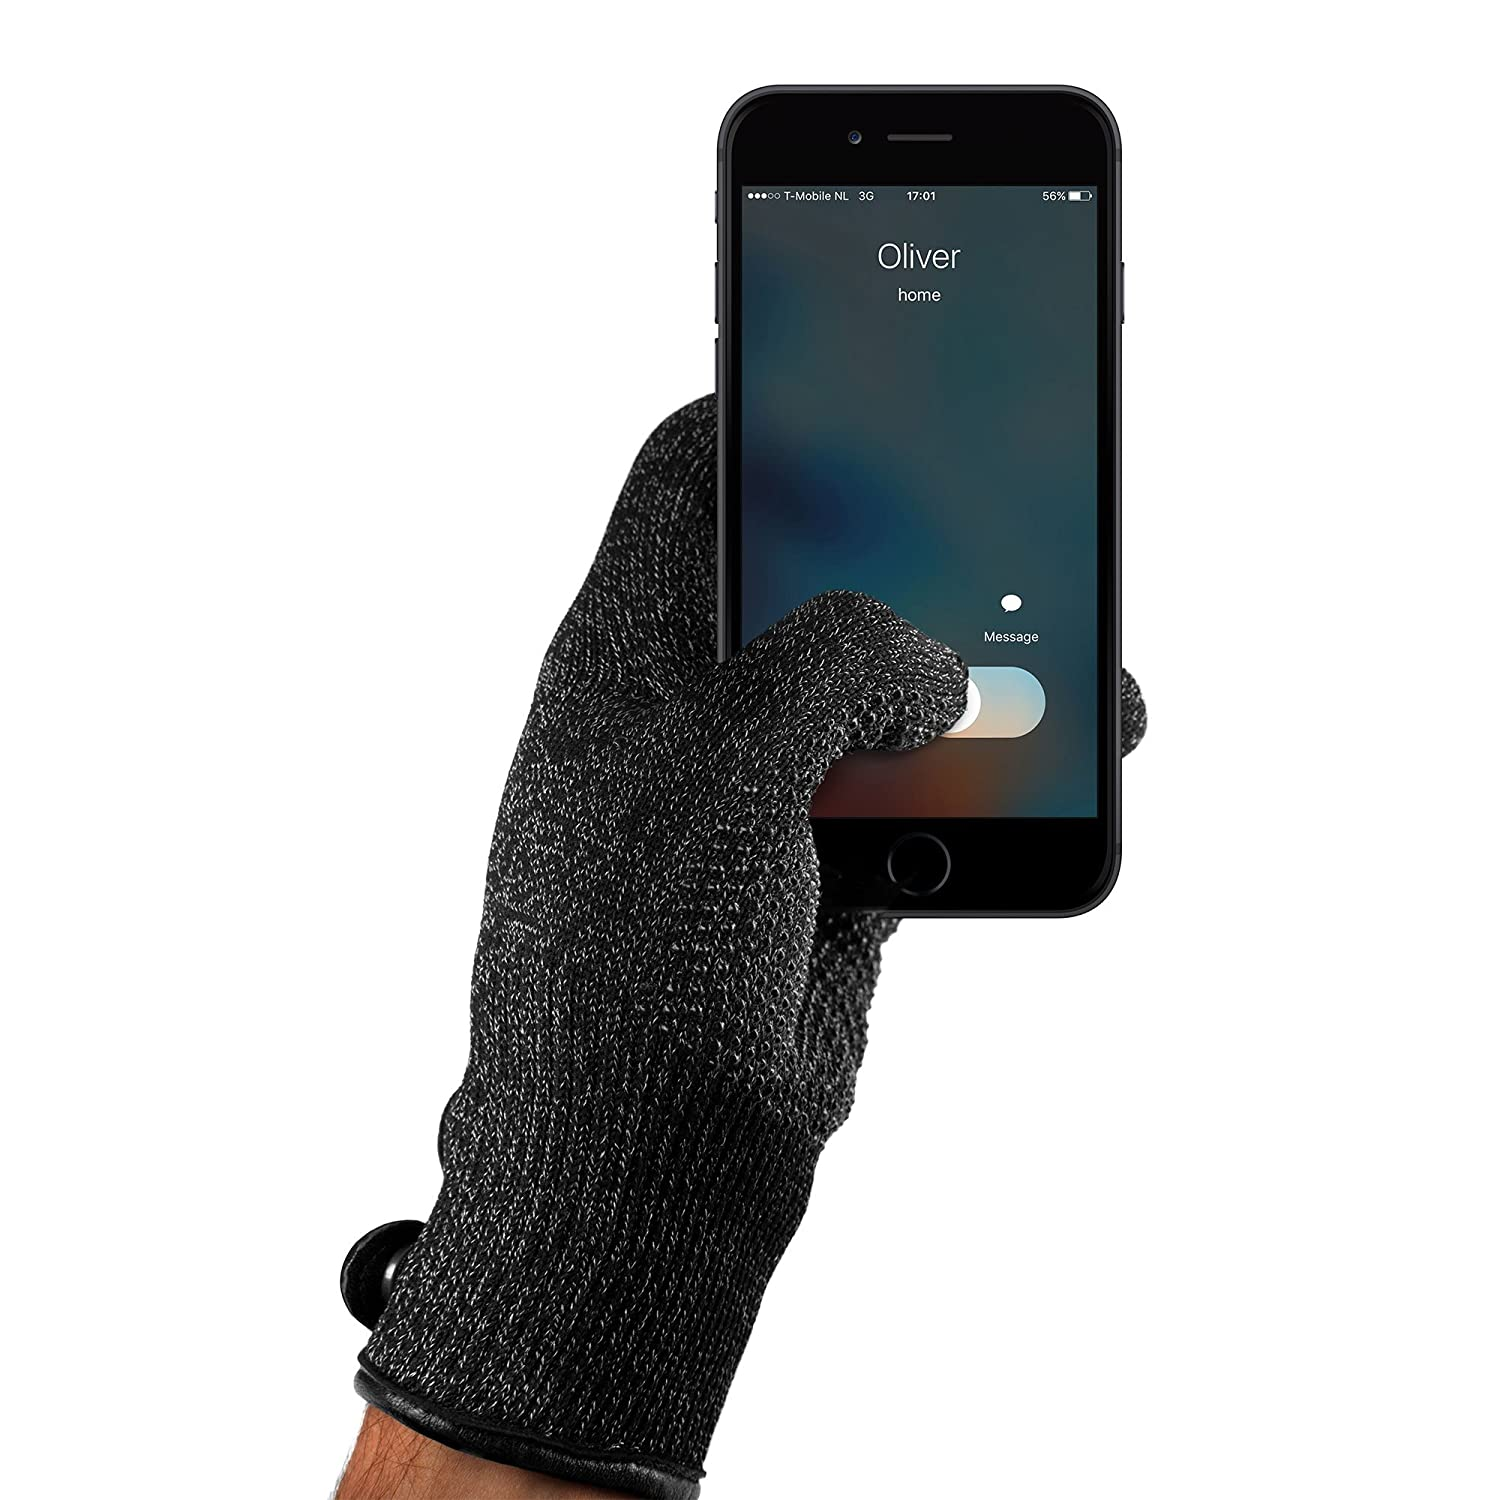 Mujjo Touchscreen Winter Gloves, Small/Single-Layered, Black 8718546171055